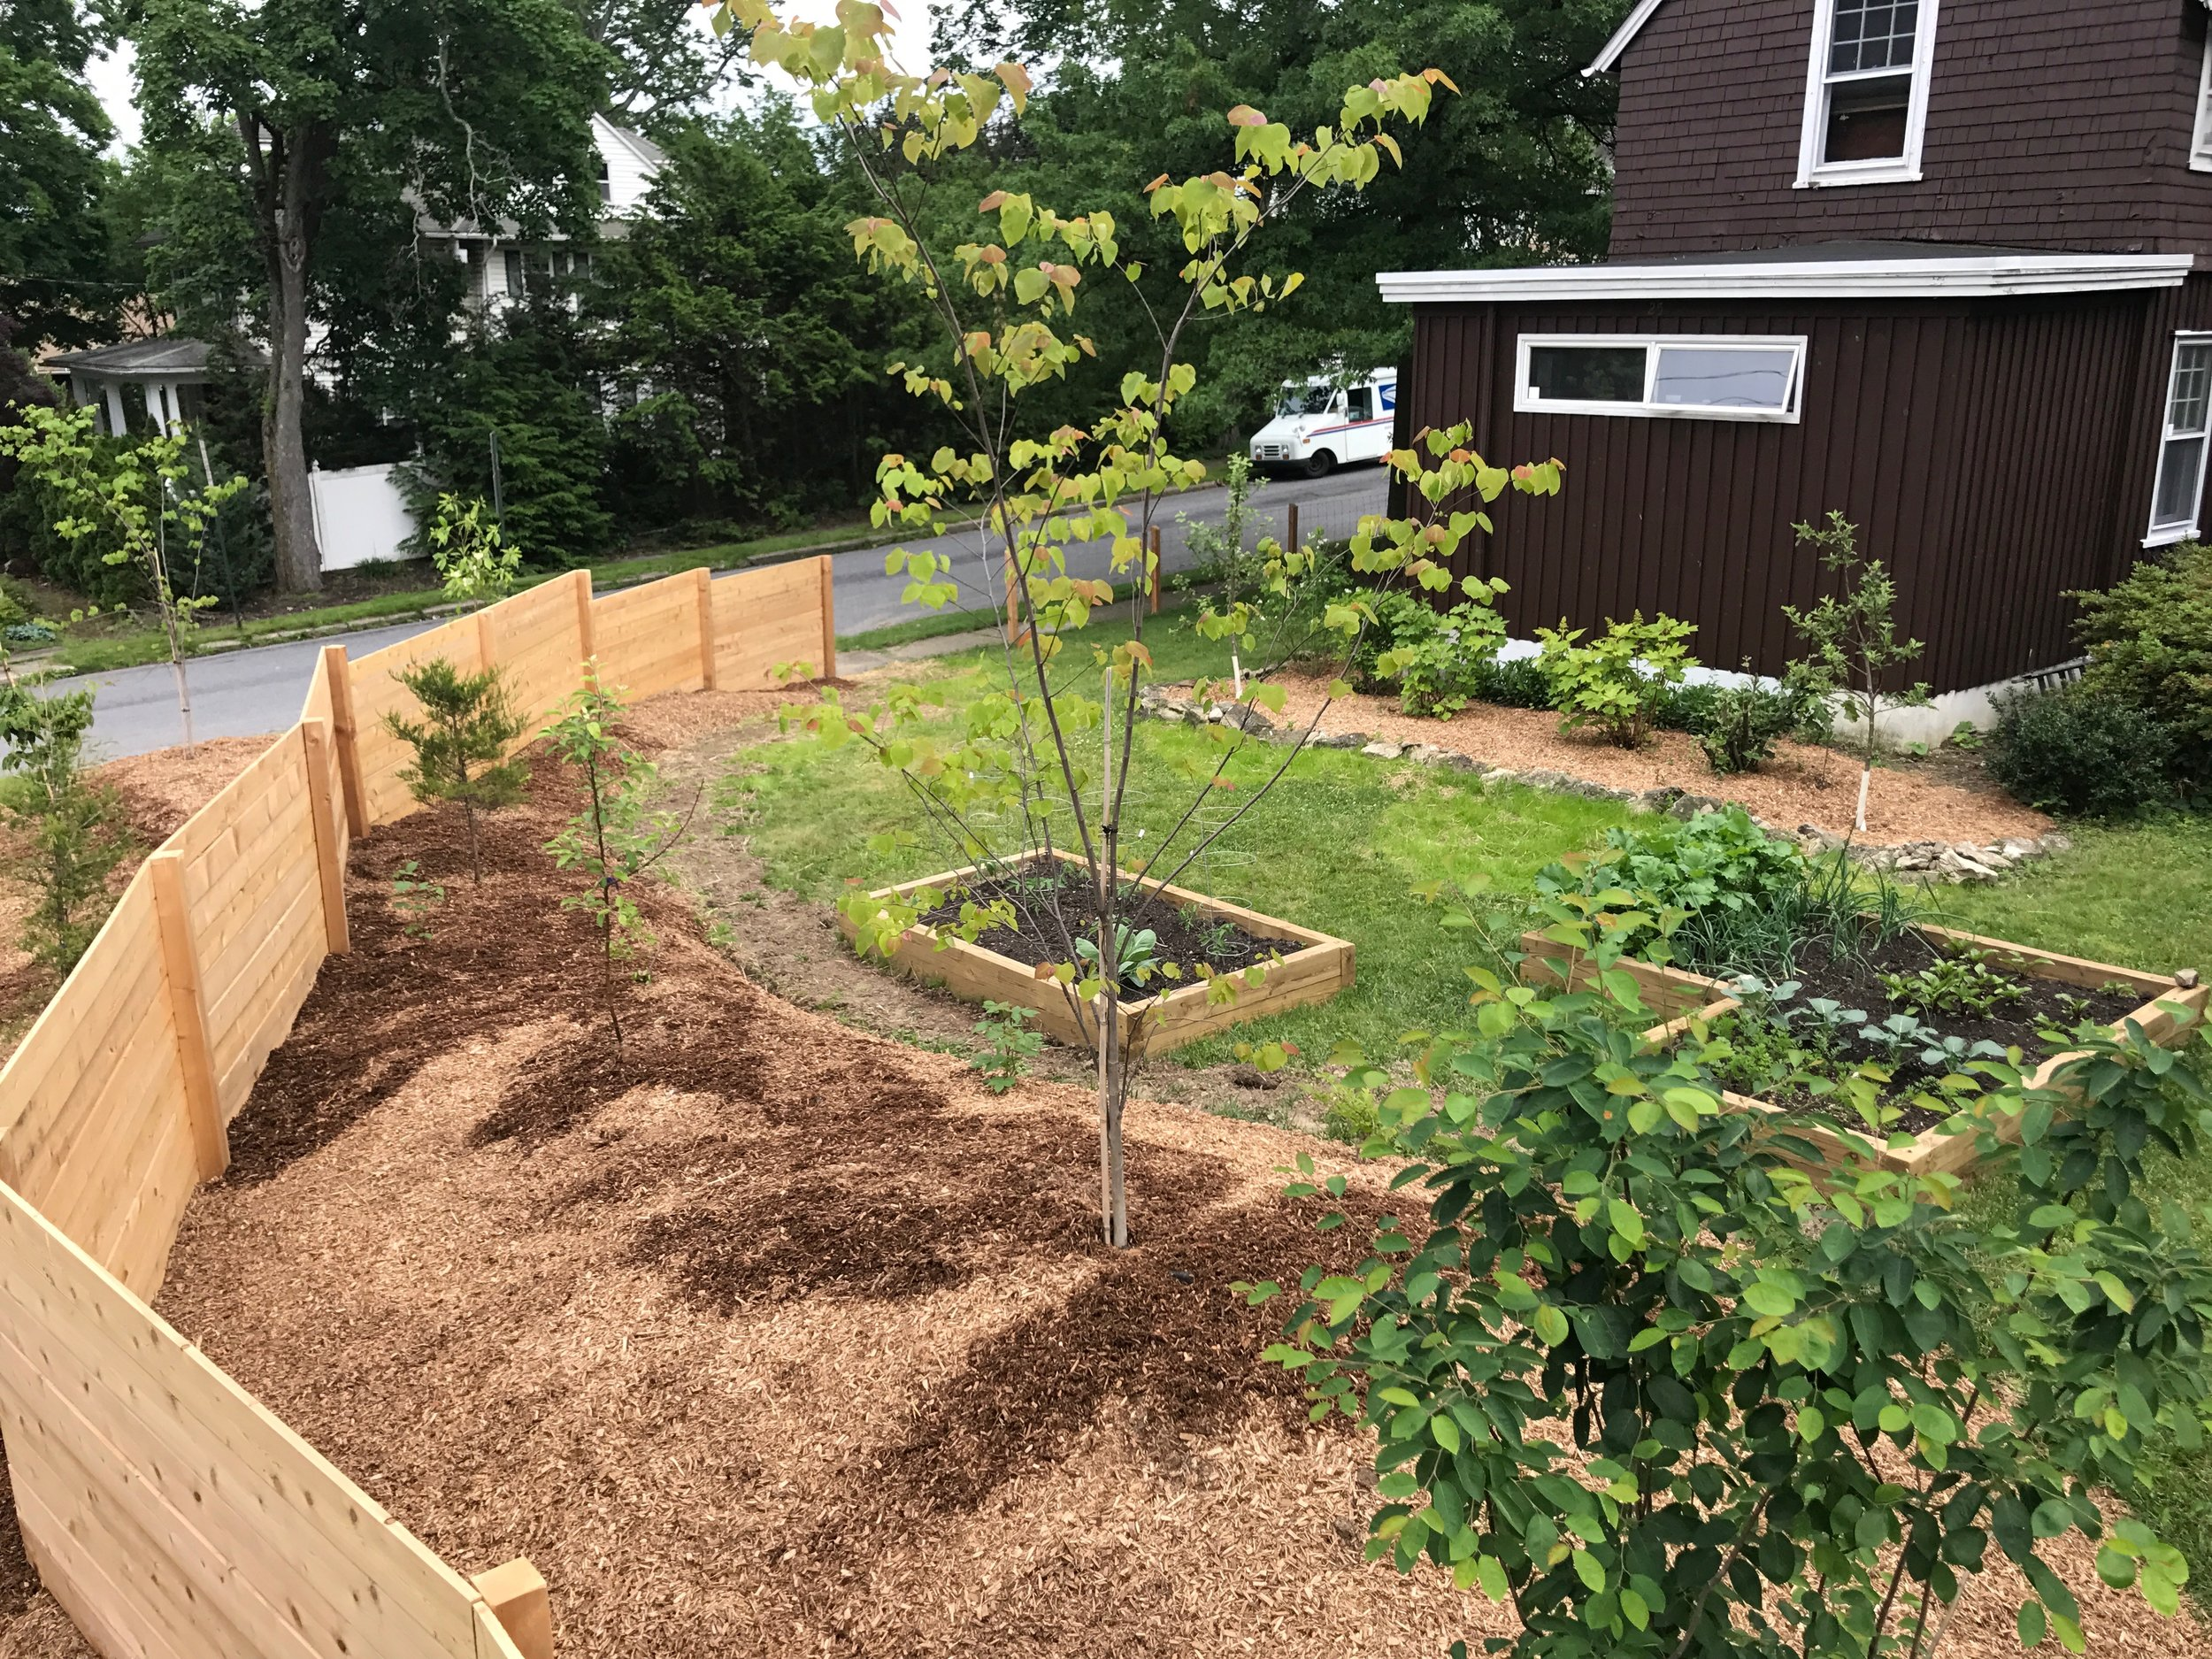 Landscape full of fruits and vegetables, including native trees, shrubs, and herbaceous species